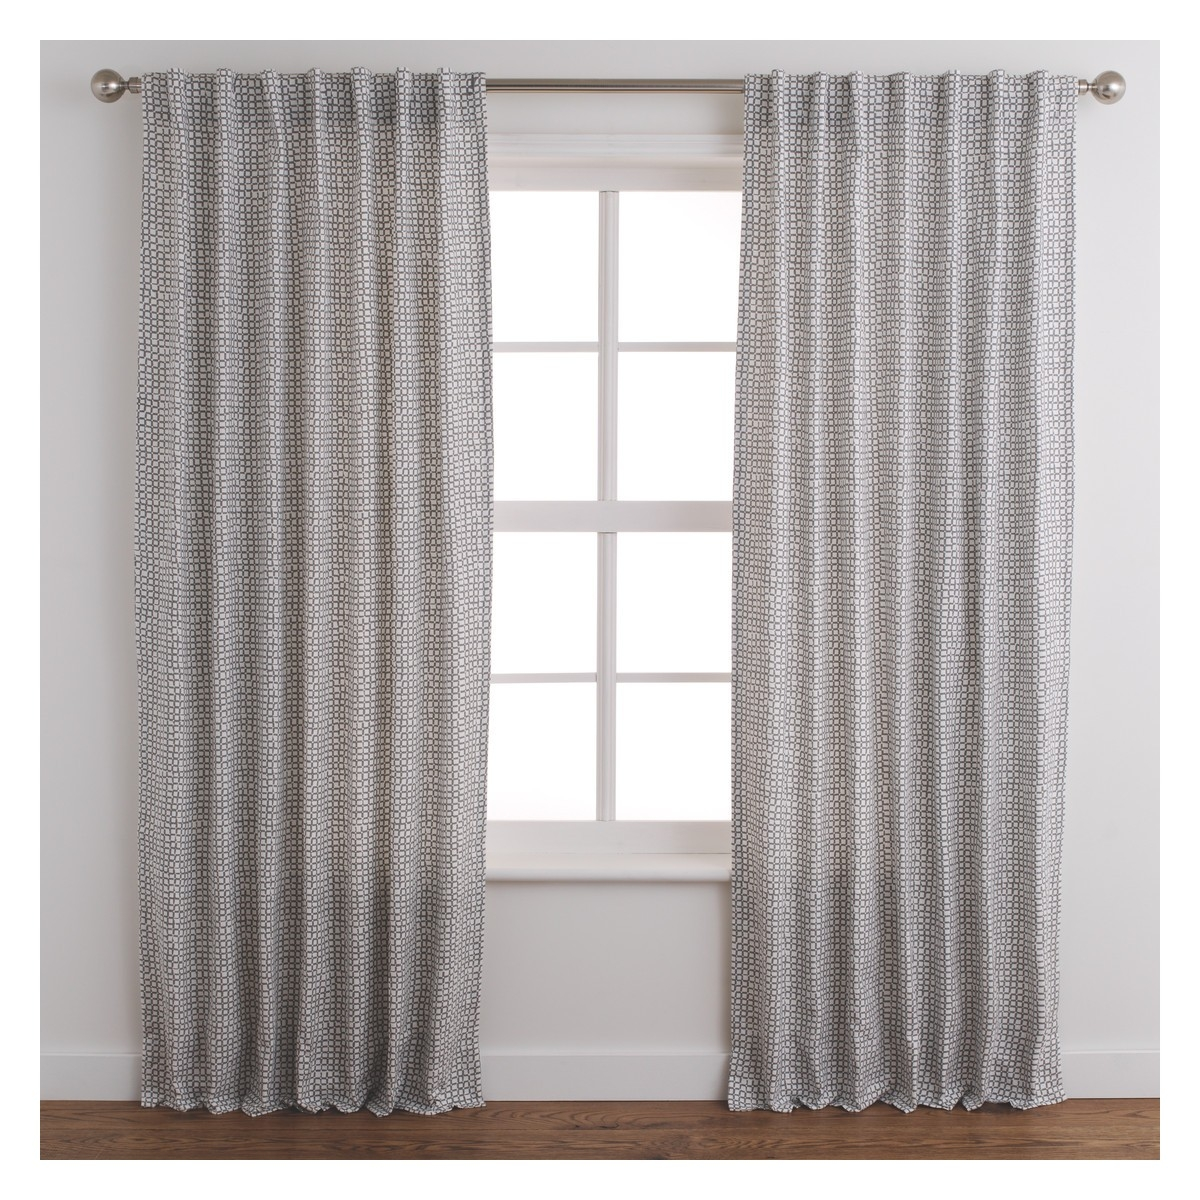 15 Photos Thick Grey Curtains Curtain Ideas